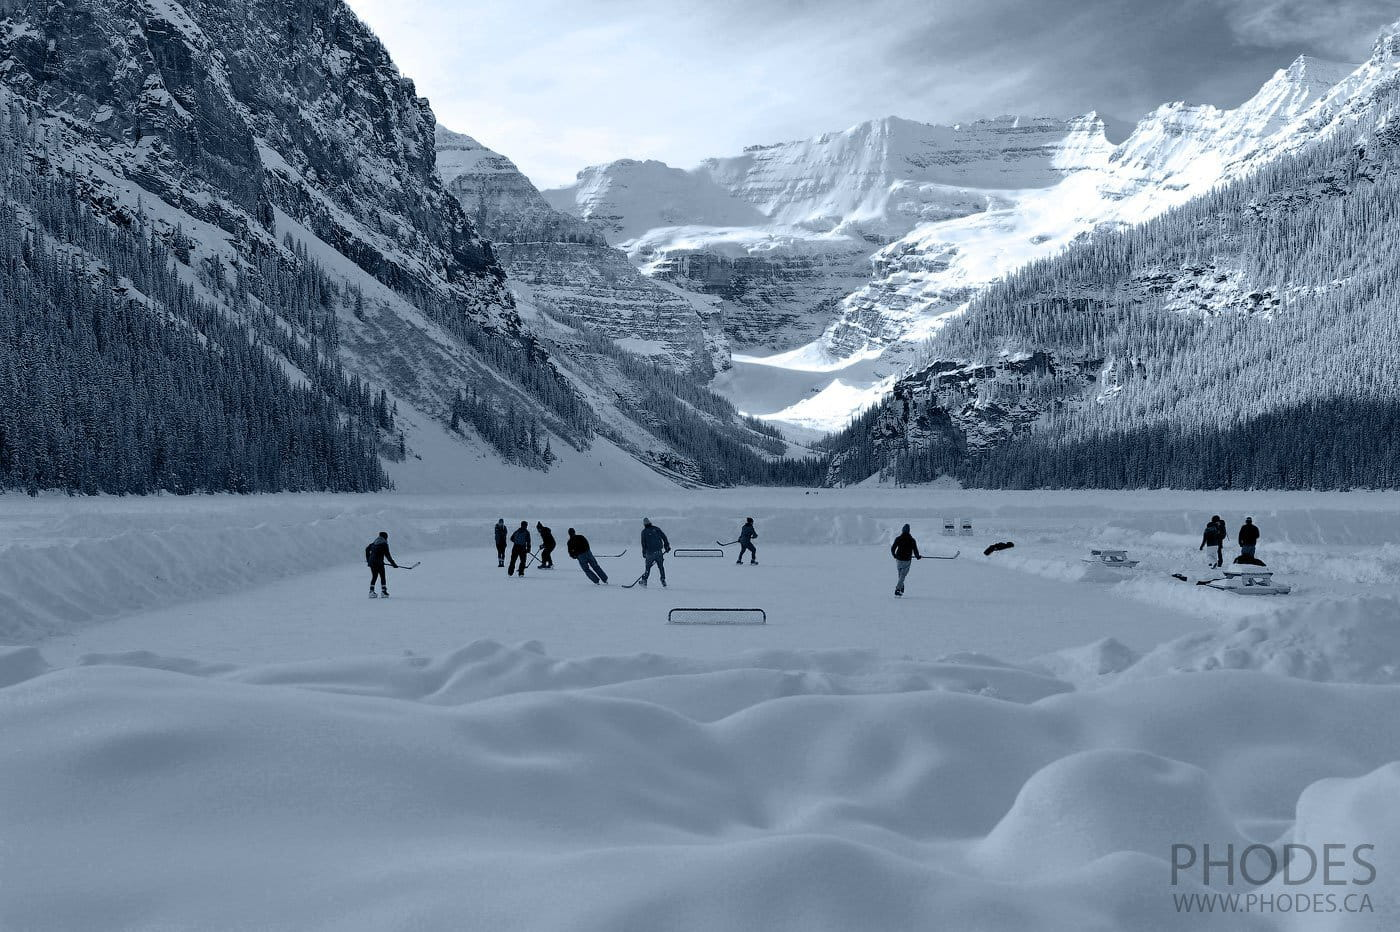 Ice hockey rink on Lake Louise in Banff